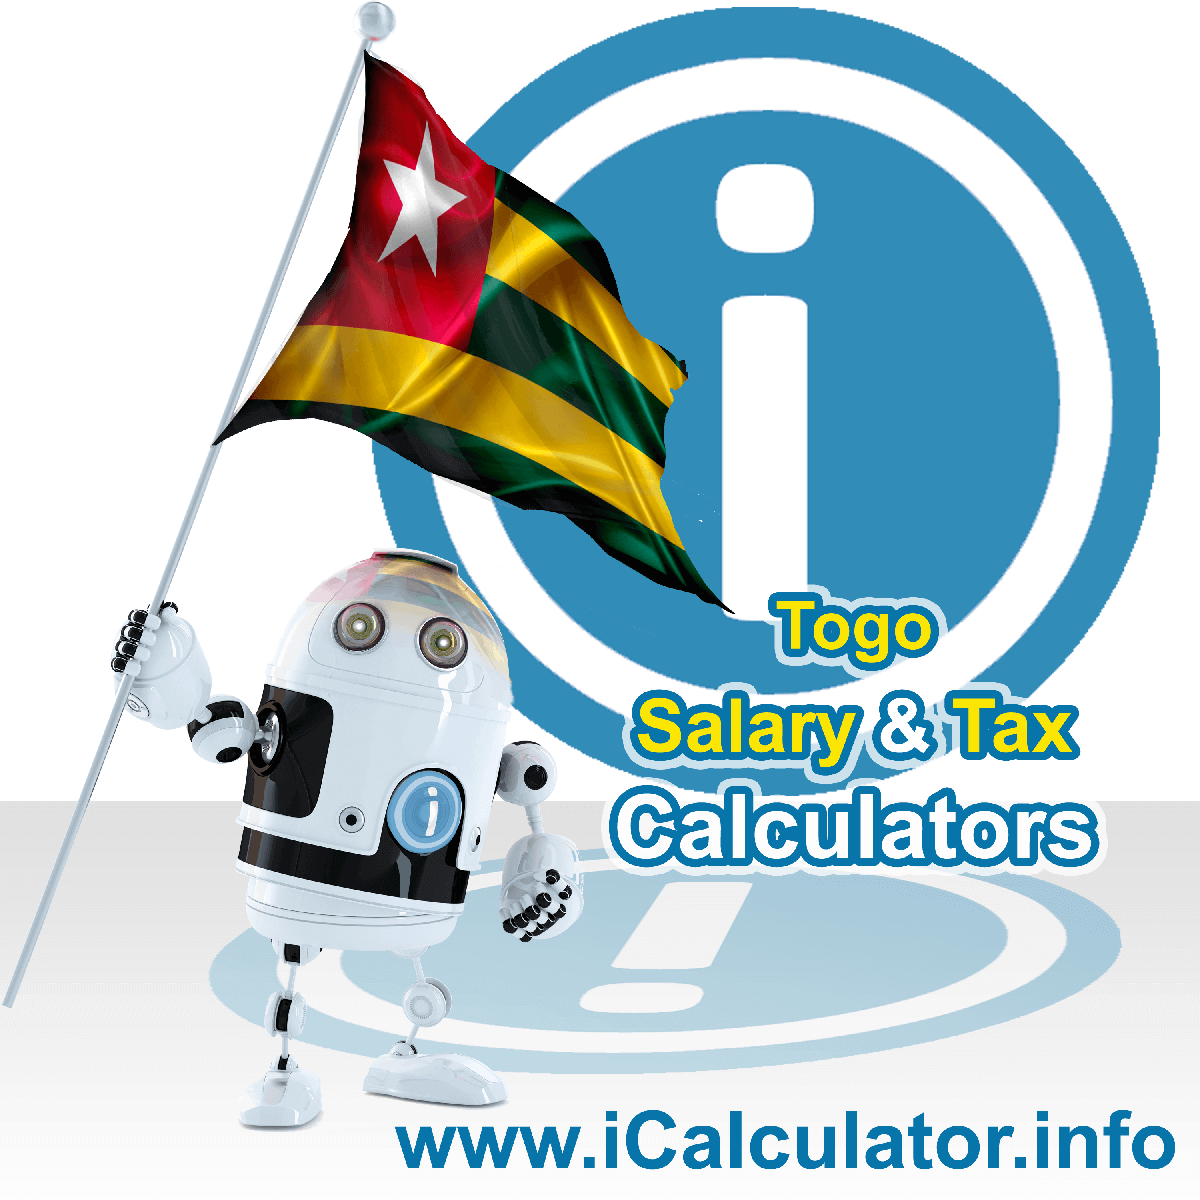 Togo Wage Calculator. This image shows the Togo flag and information relating to the tax formula for the Togo Tax Calculator